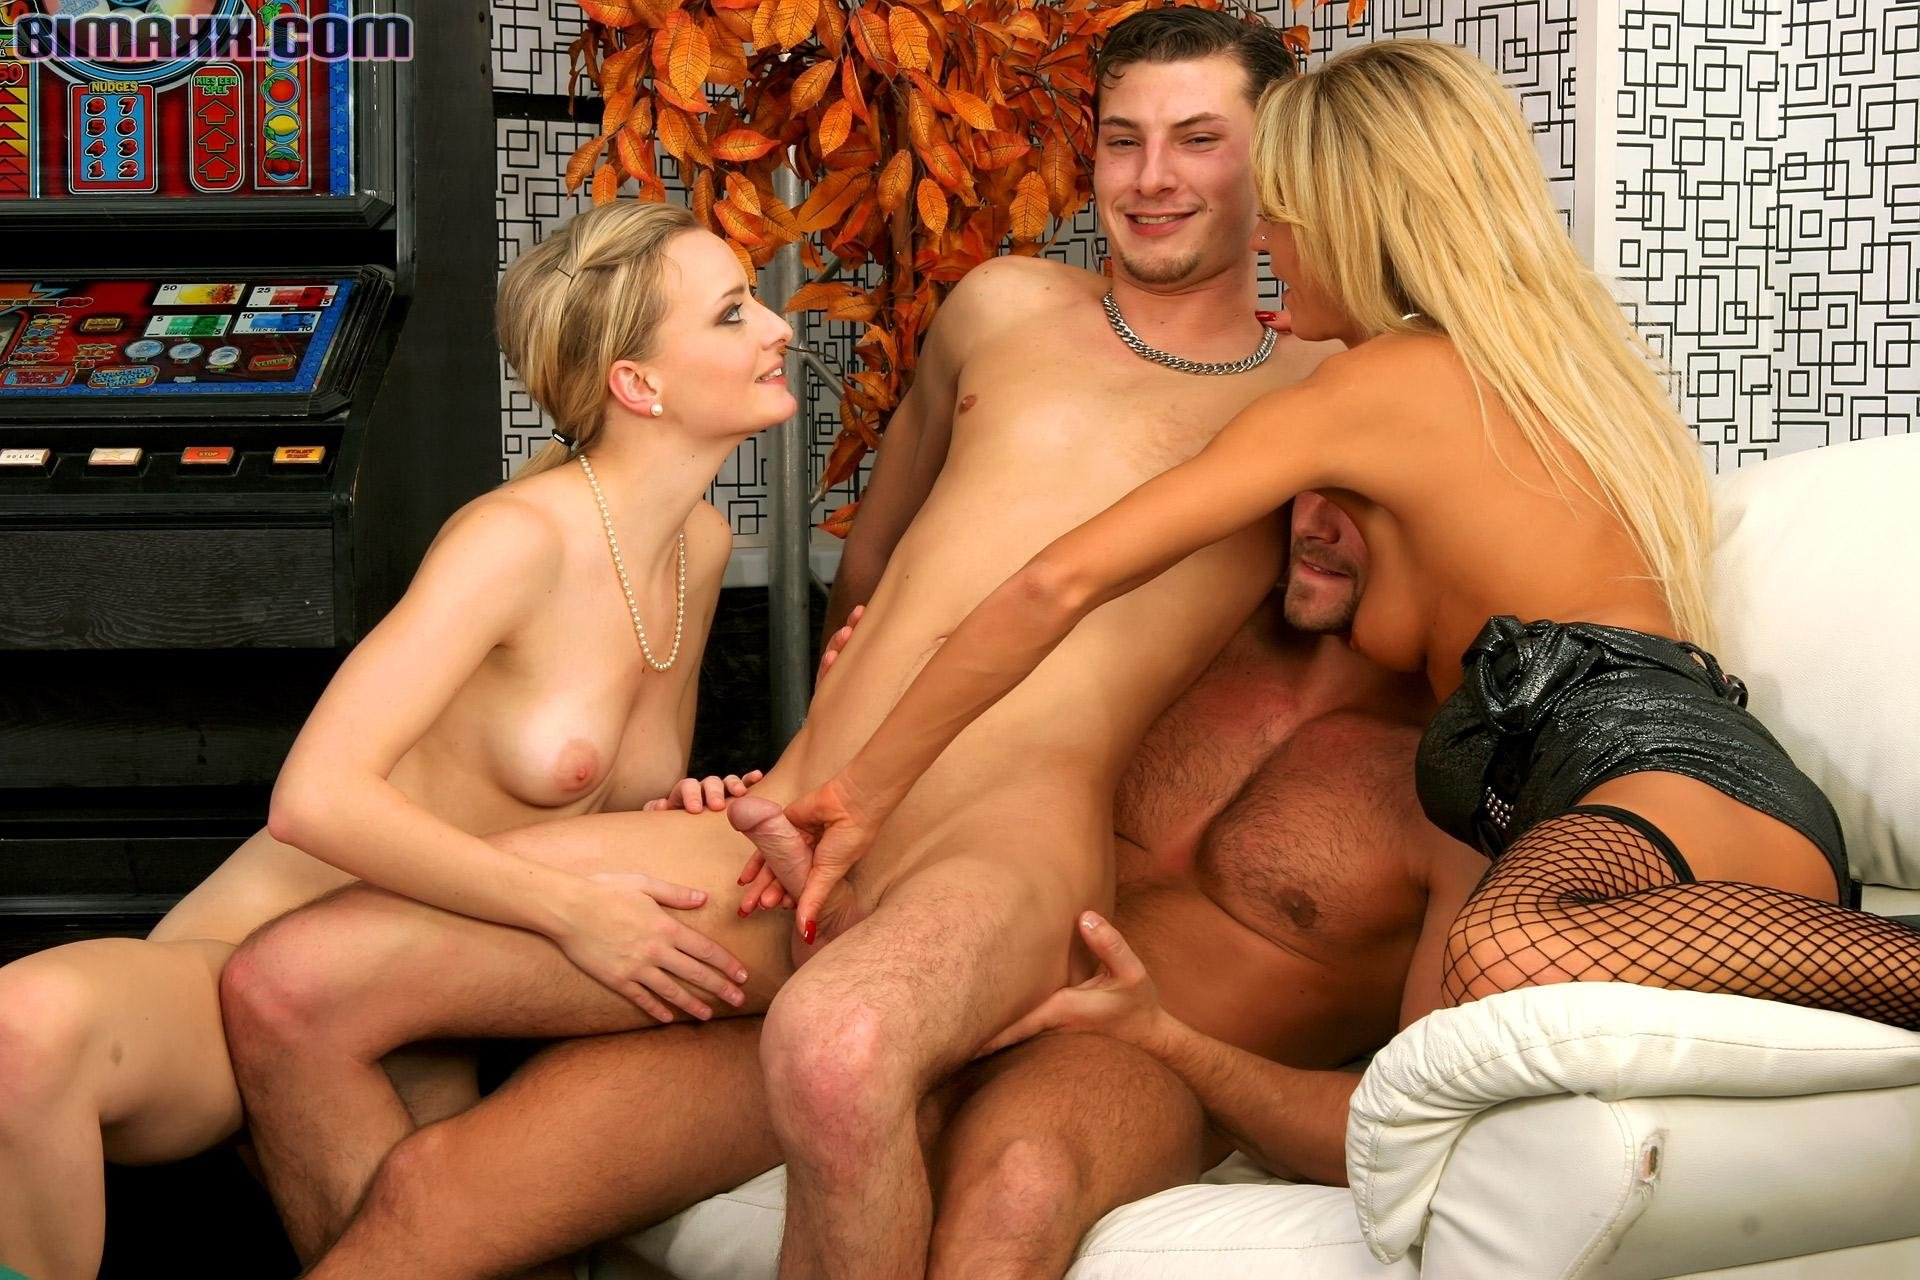 Zulu with big cock Cheating porn picture gallery